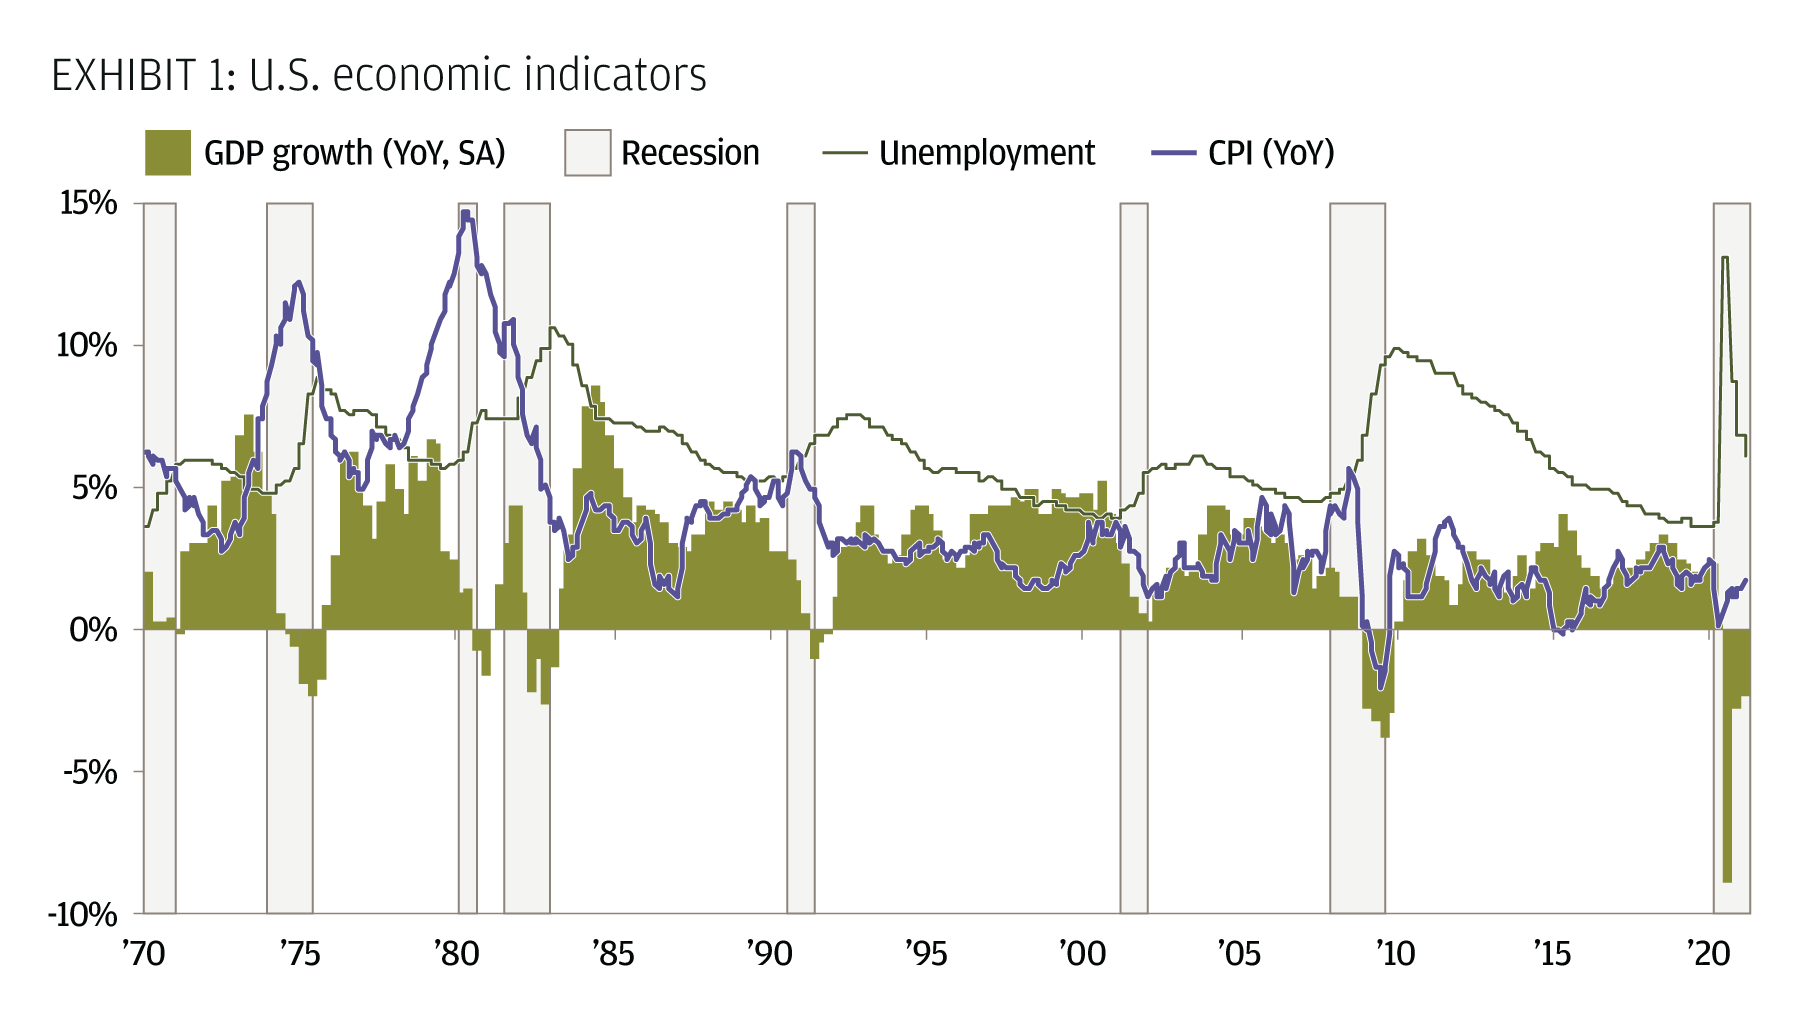 U.S. economic indicators